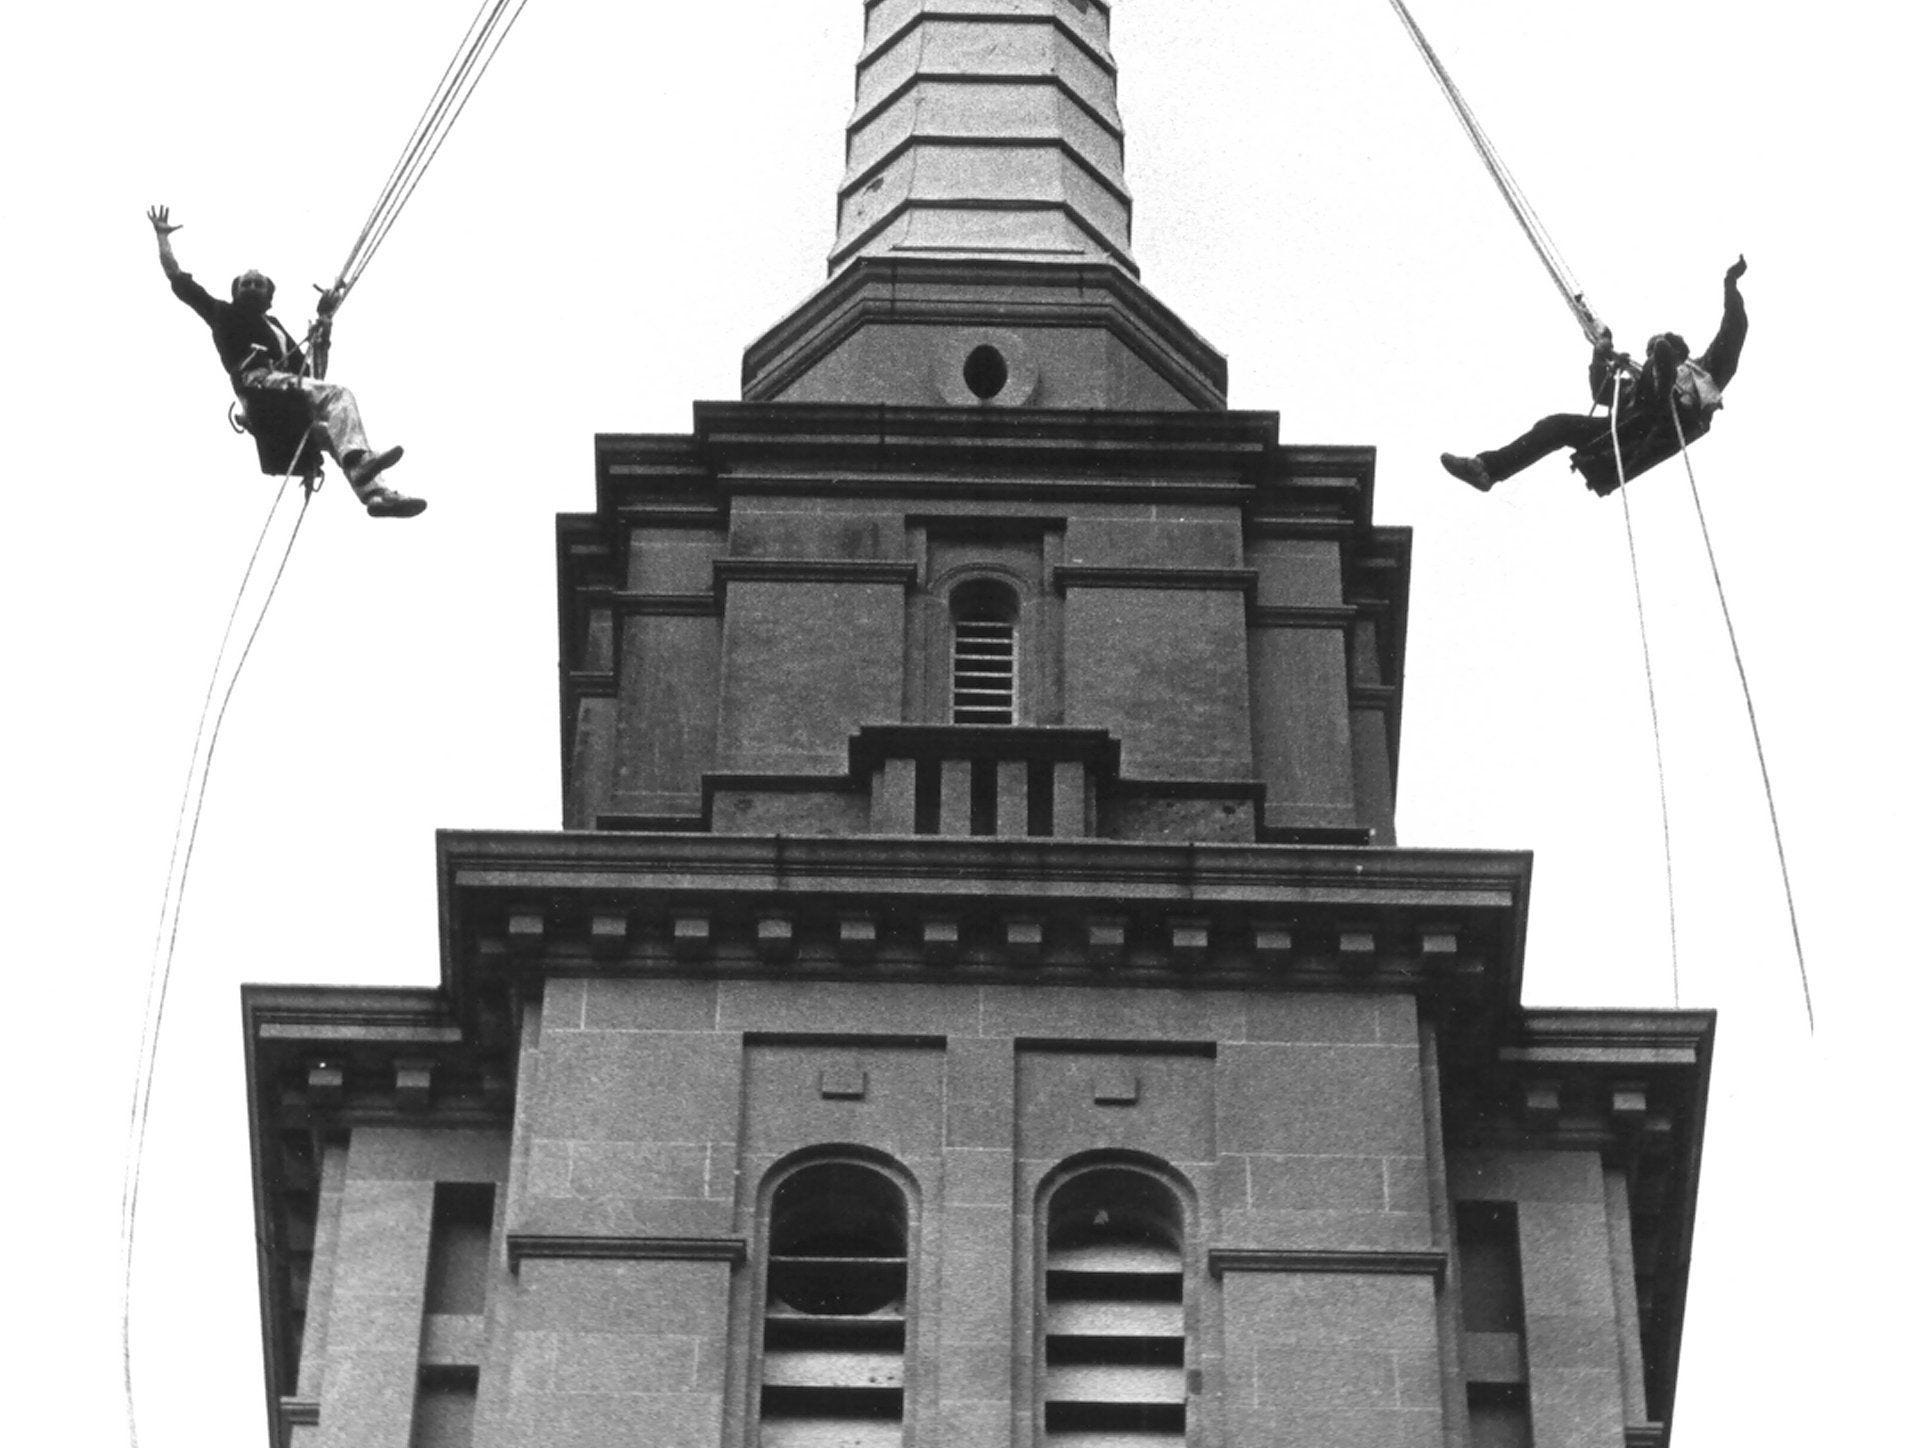 Ron Leecy (Left) and David Pelkey have a high risk job, but manage to have a little fun while doing restoration work on the steeple at Second Presbyterian Church at Poplar and Goodlett on 7 Mar 1987.